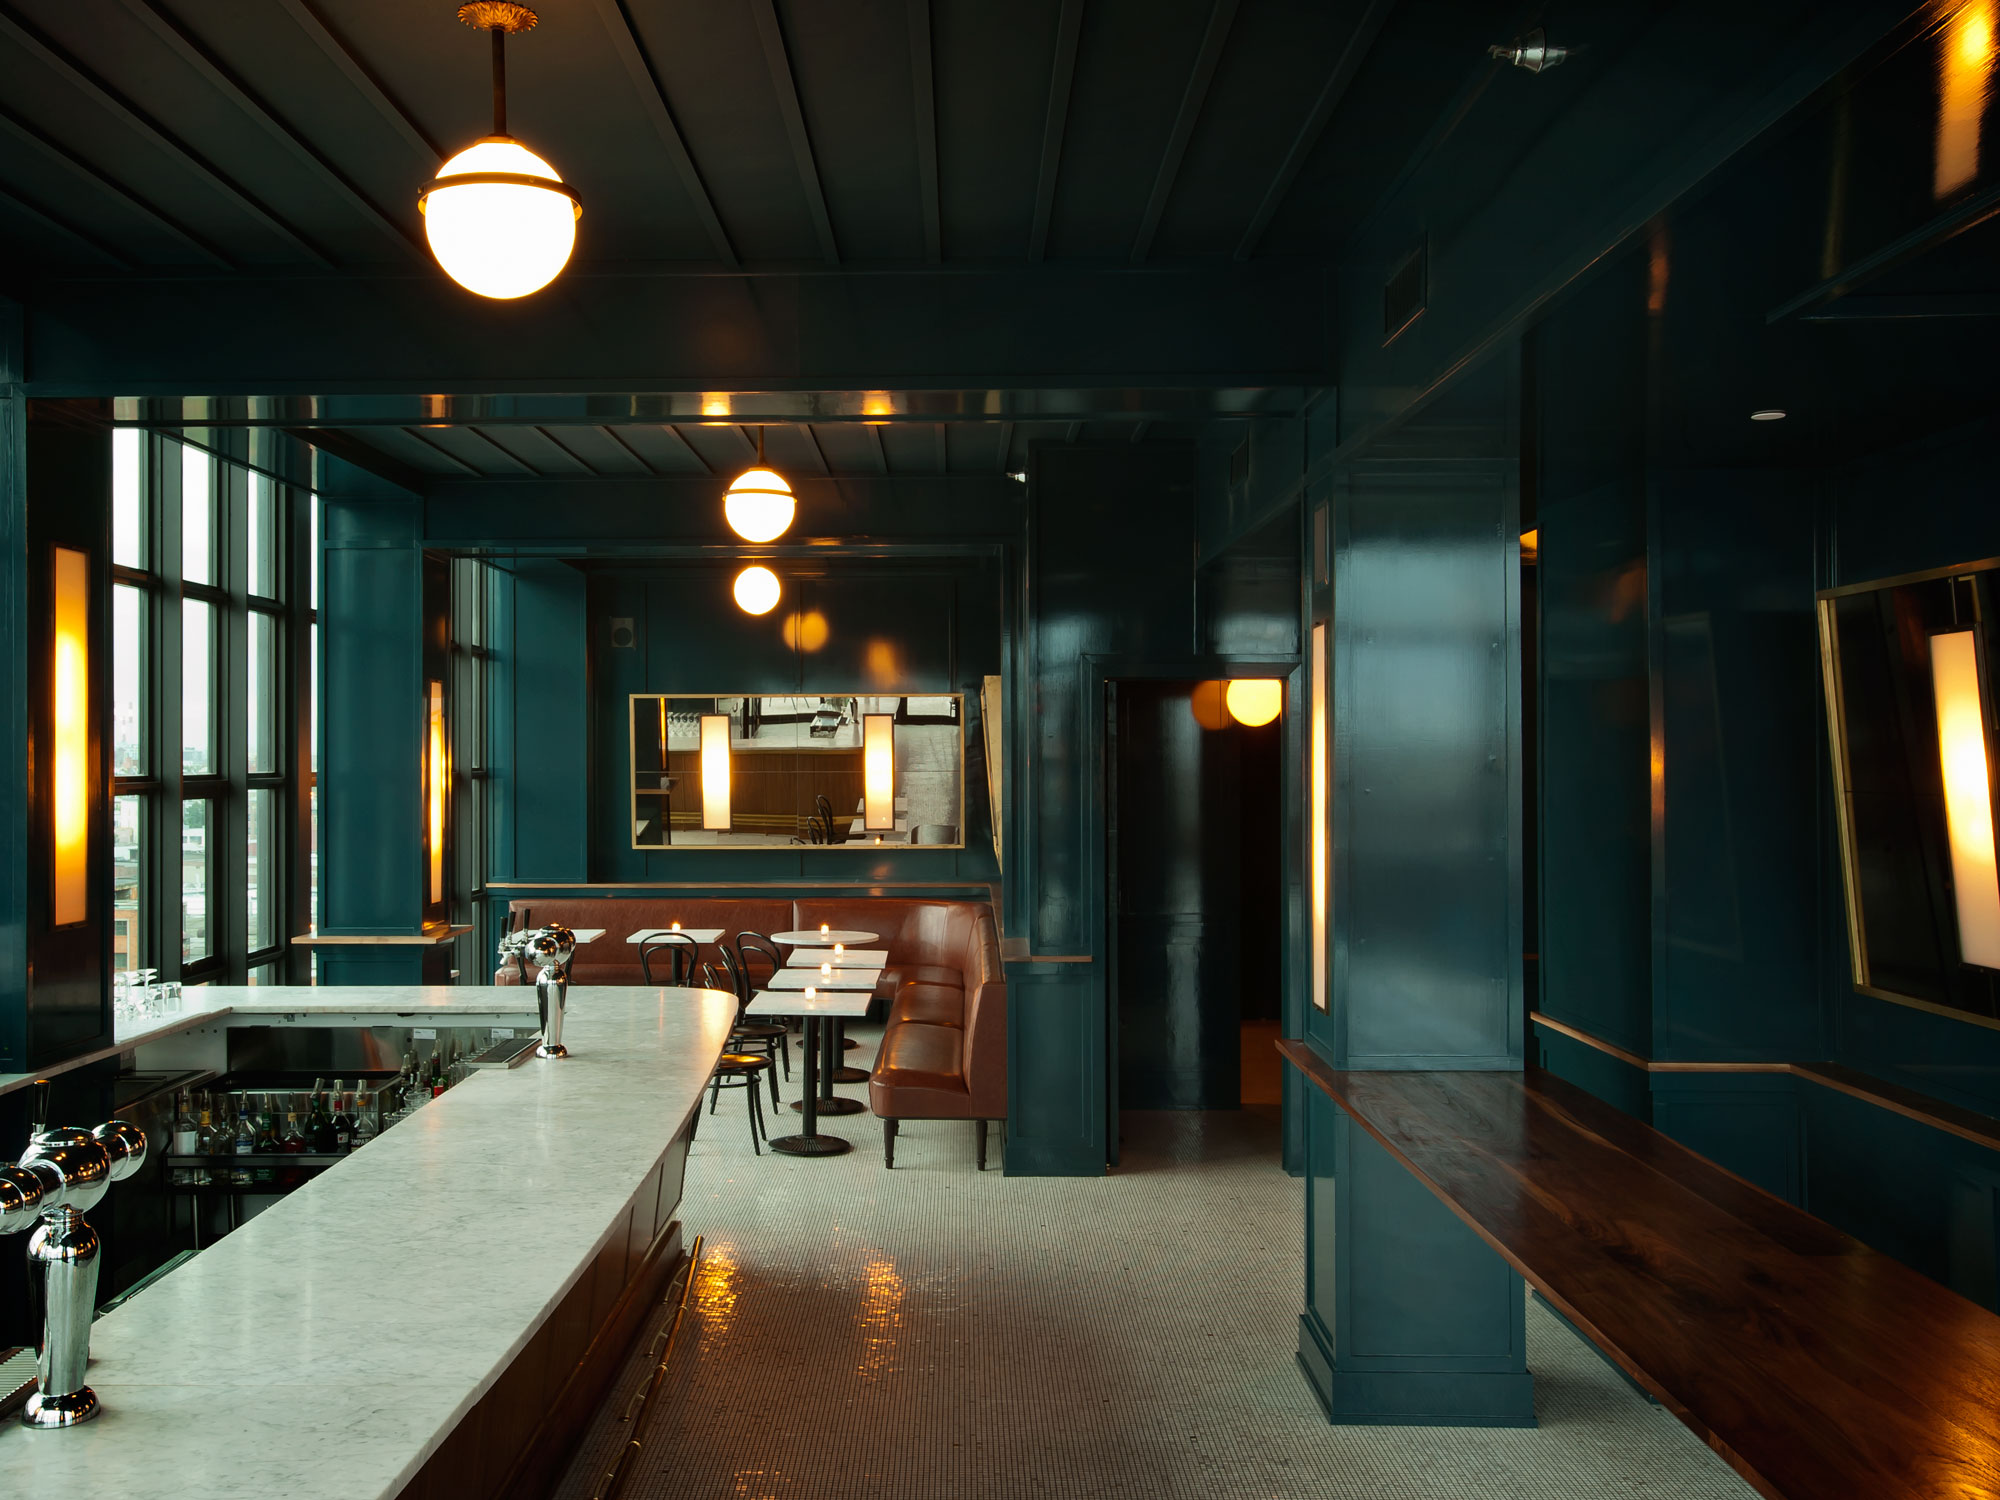 The wythe hotel brooklyn ny hotel design for Industrial hotel design